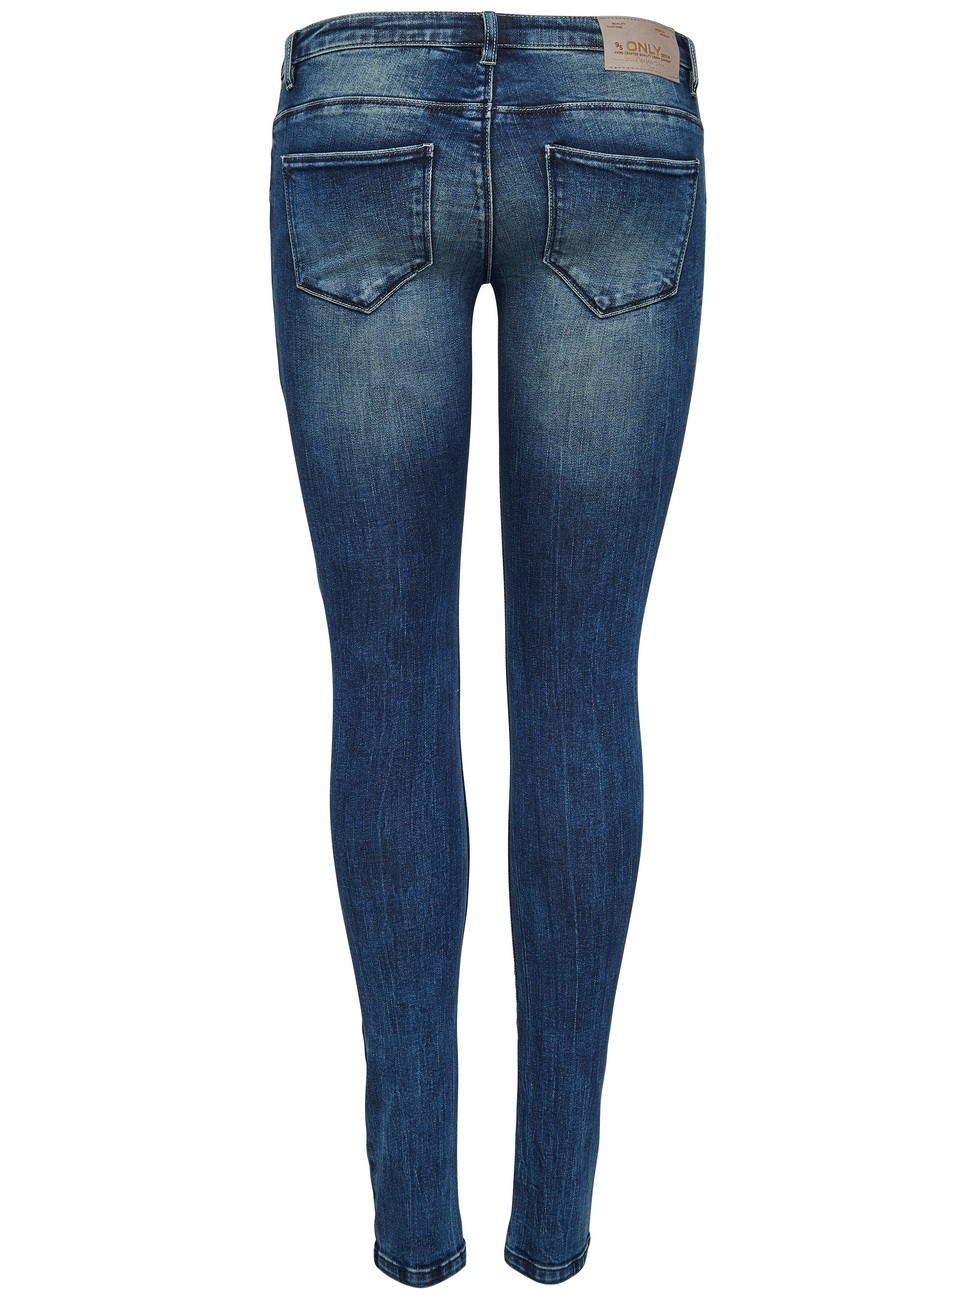 Only Damen Jeans onlCORAL SL DNM JEANS GUA12919 - Skinny Fit - Blau - Medium Blue Denim